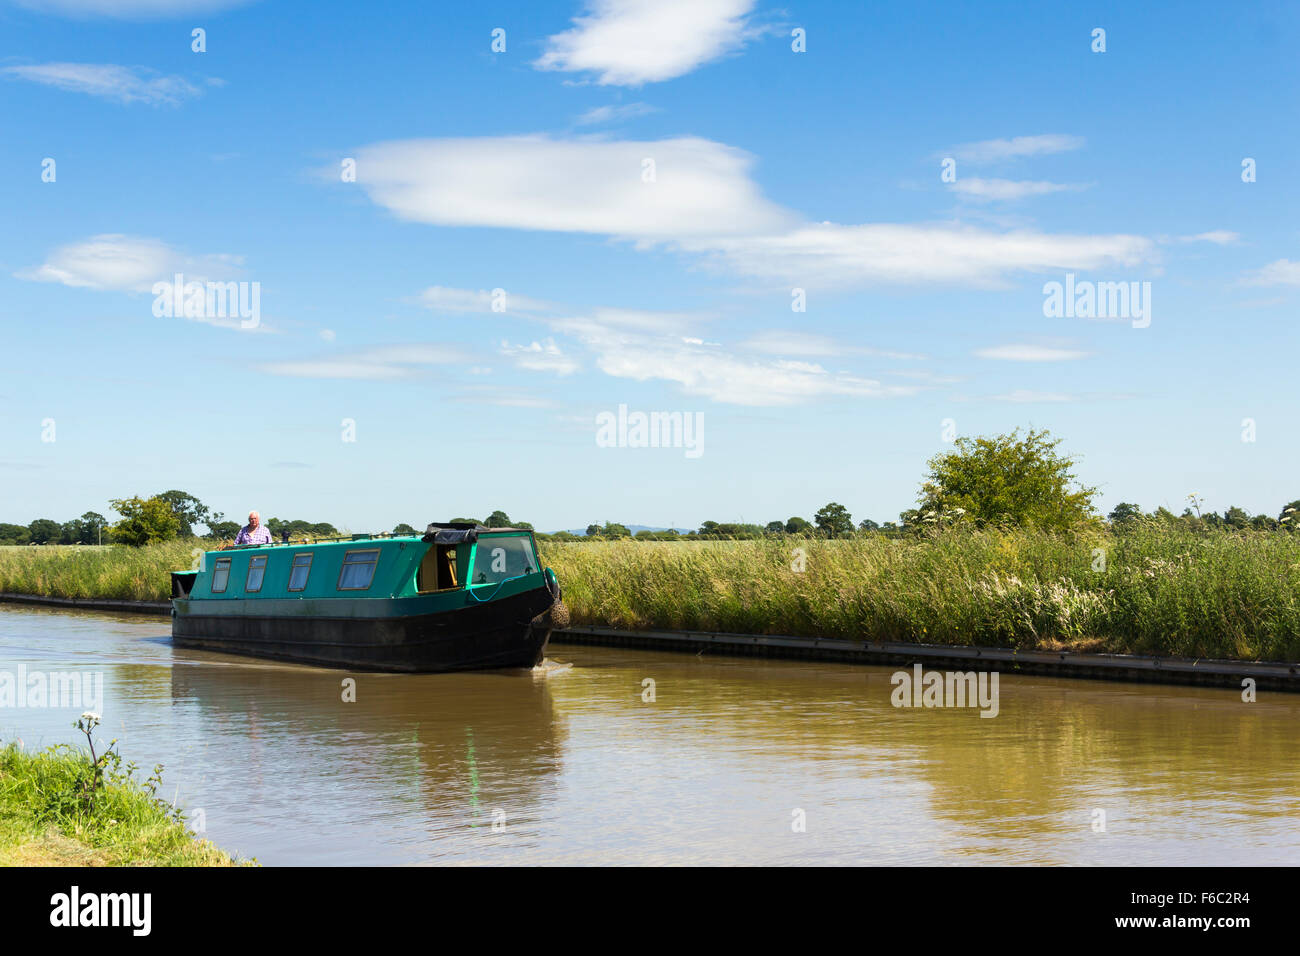 Unidentified houseboat sailing west  on Shropshire Union Canal Middlewich branch near Worleston, Cheshire. - Stock Image